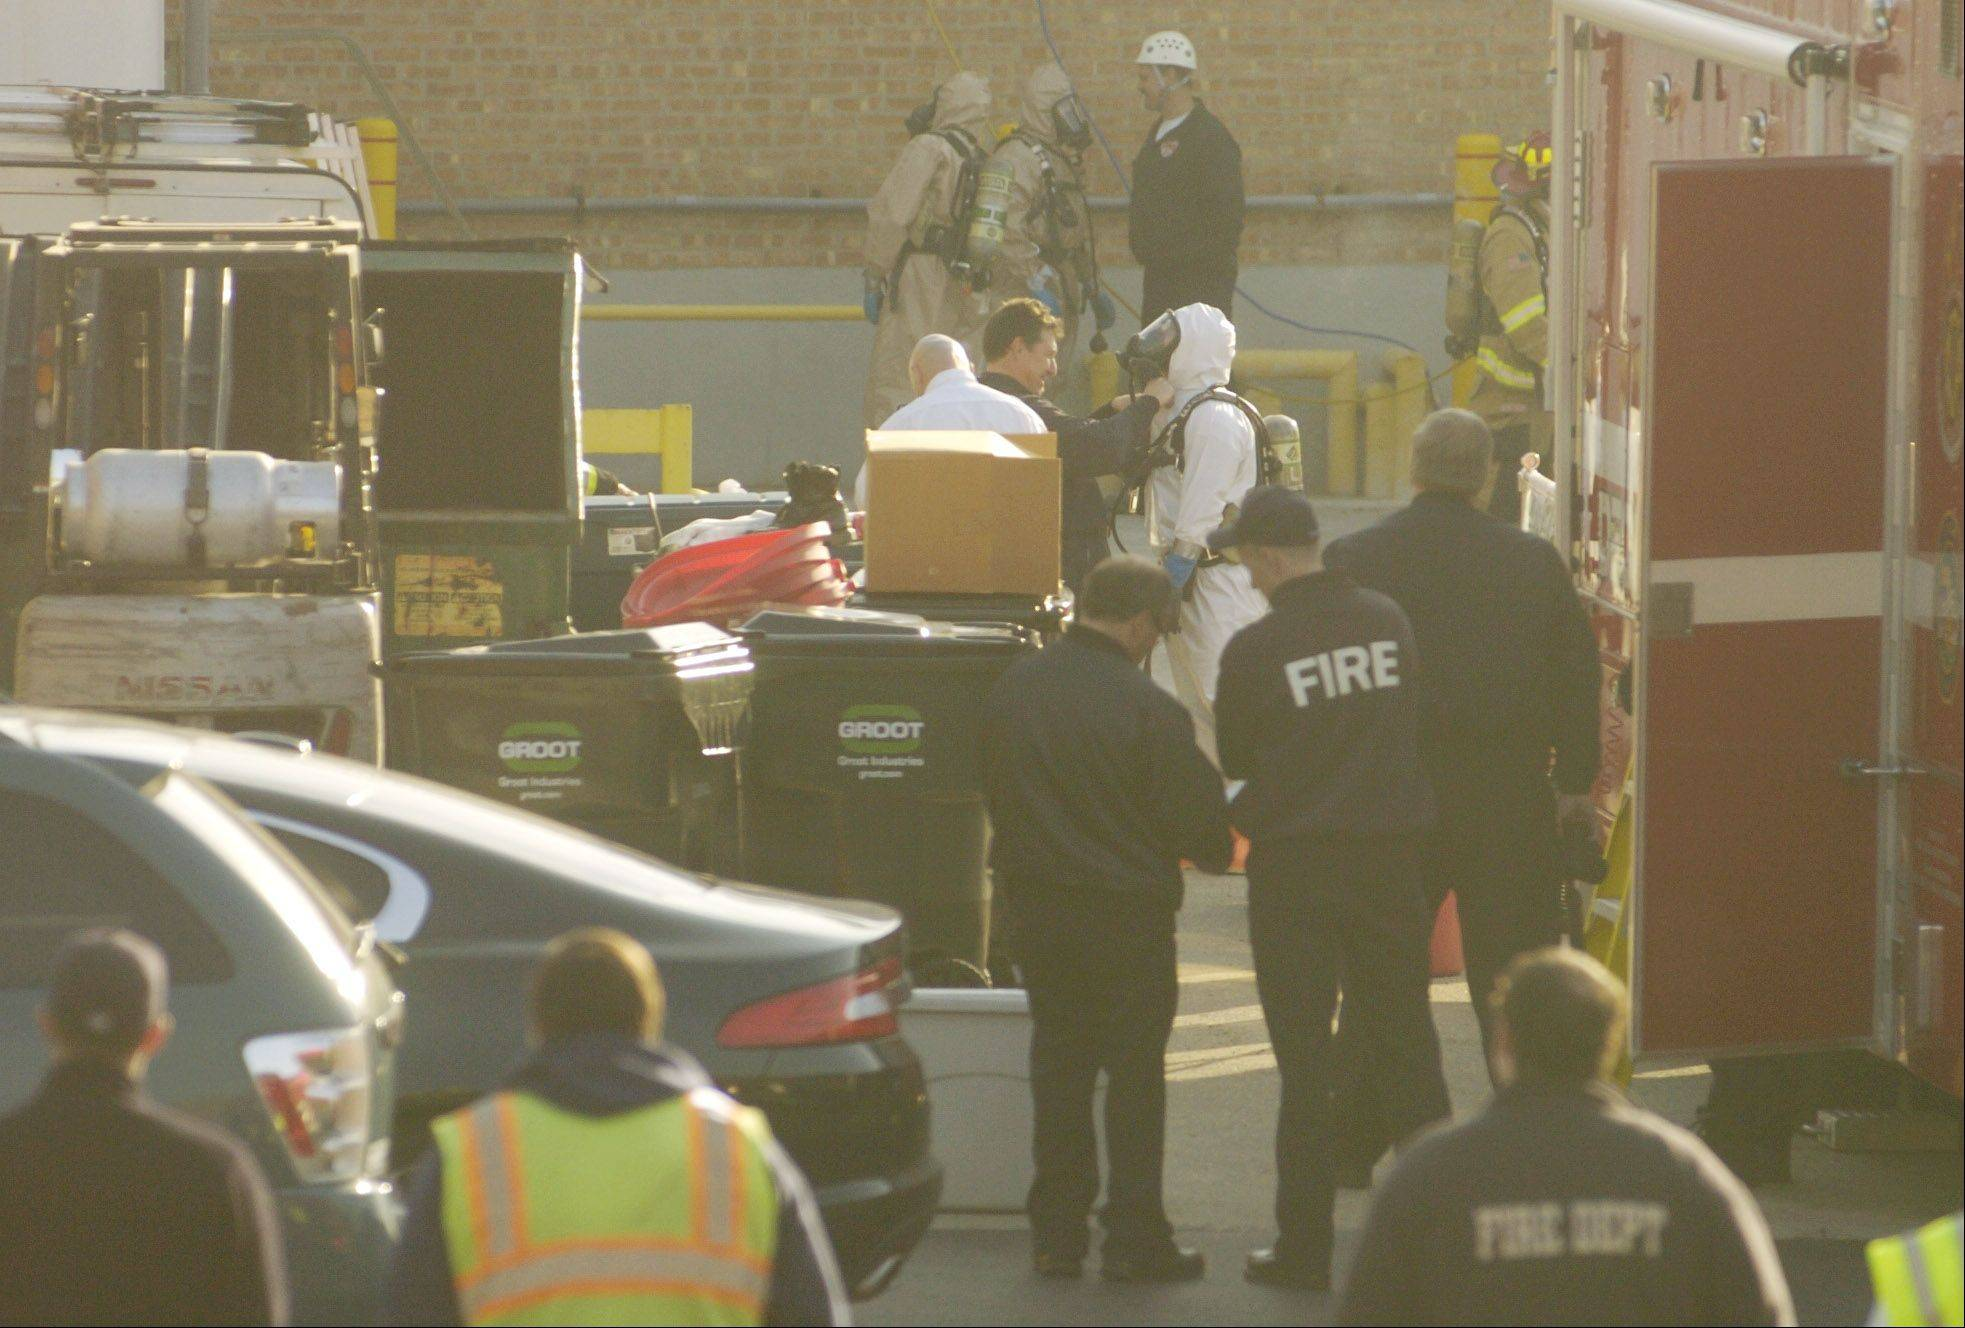 Rescue workers attempt to remove the body of a man who died in a chemical tank at a business in Wheeling.